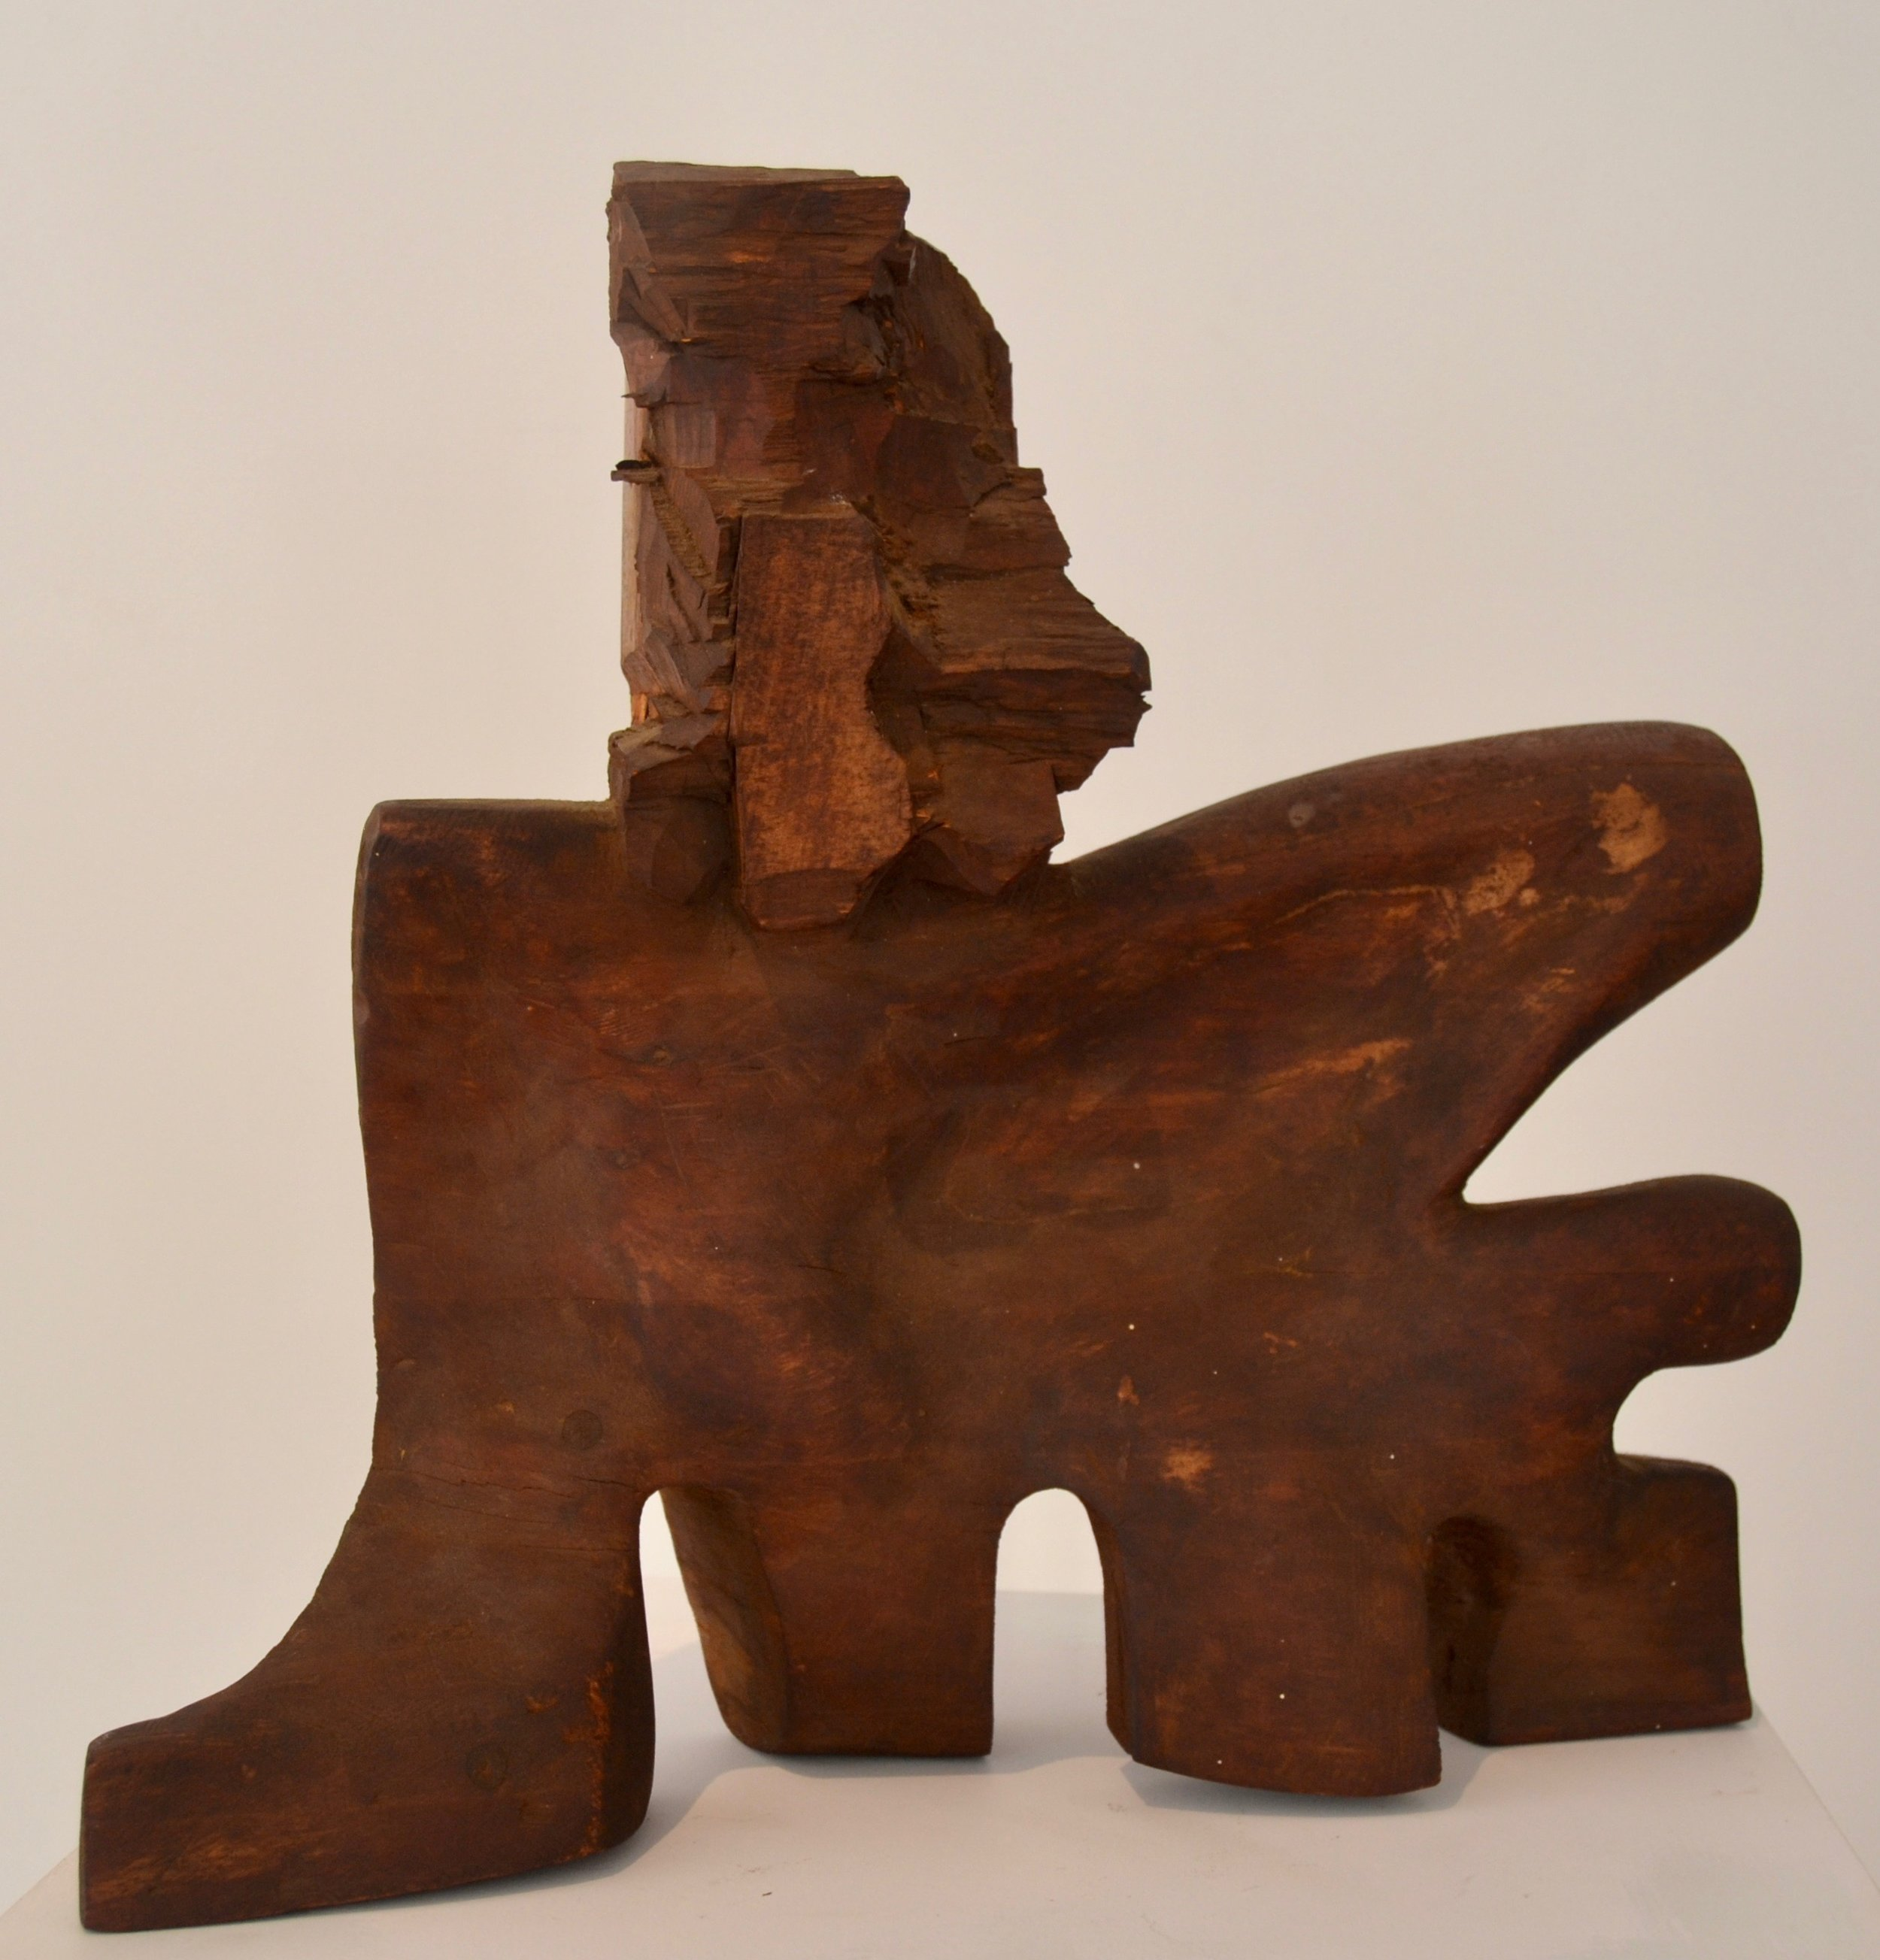 Untitled,  1956 Wood 16 x 17 x 4.5 inches